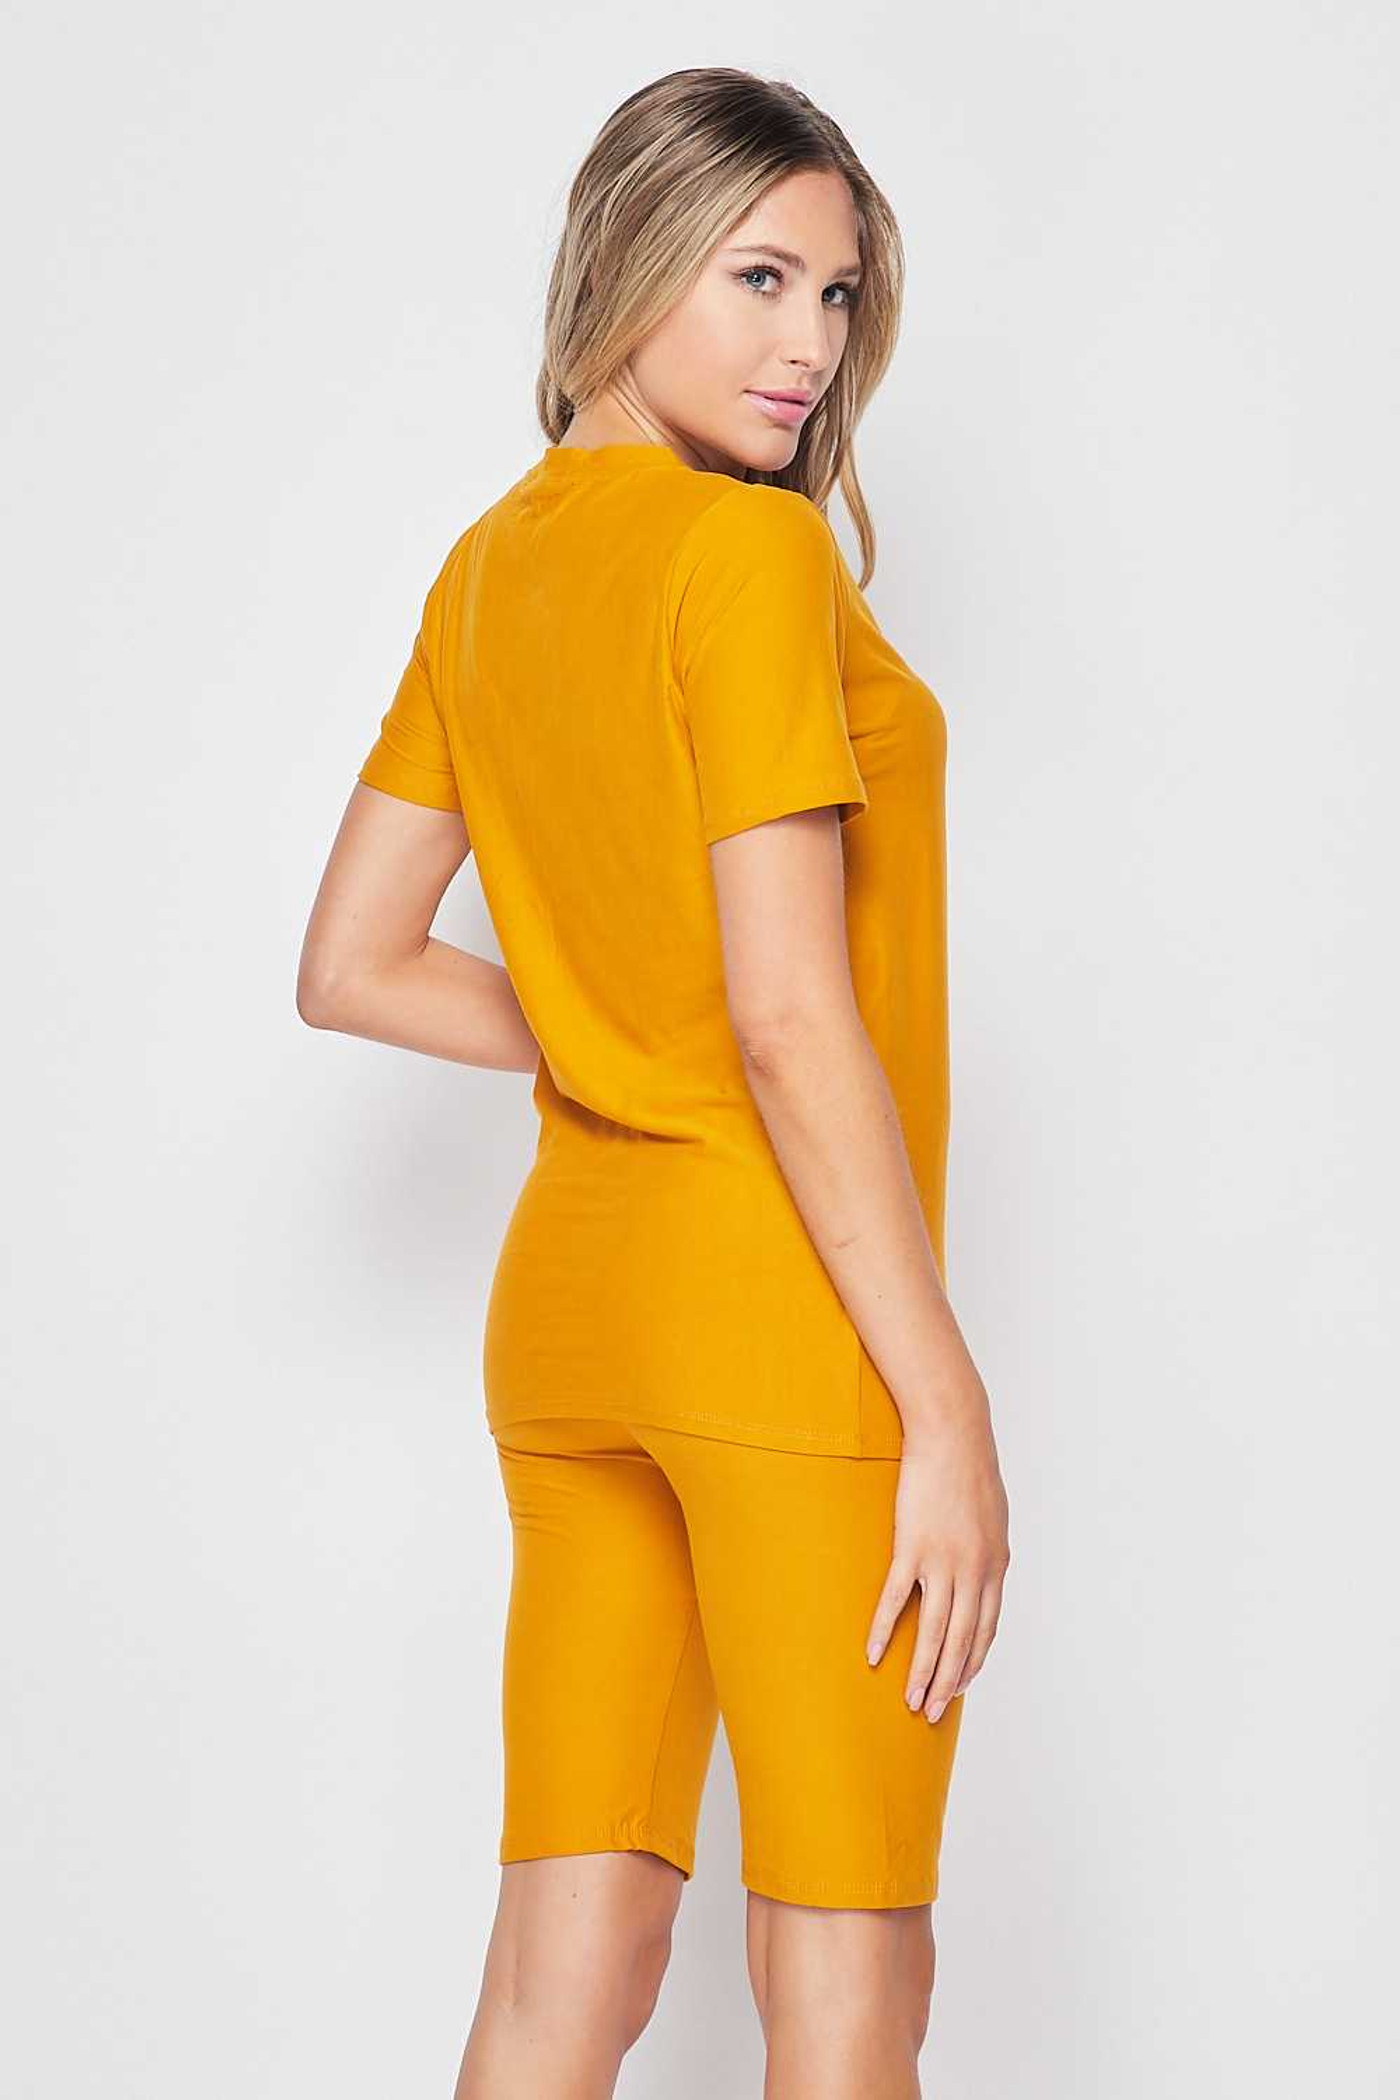 45 degree back right side of Mustard Buttery Soft Basic Solid Biker Shorts and T-Shirt Set